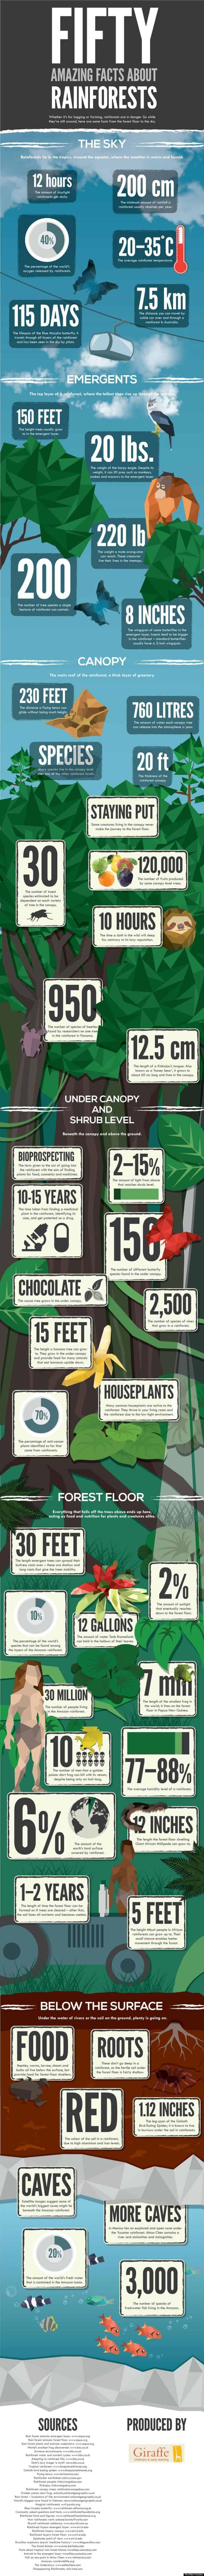 Facts about rainforests and why they are disappearing